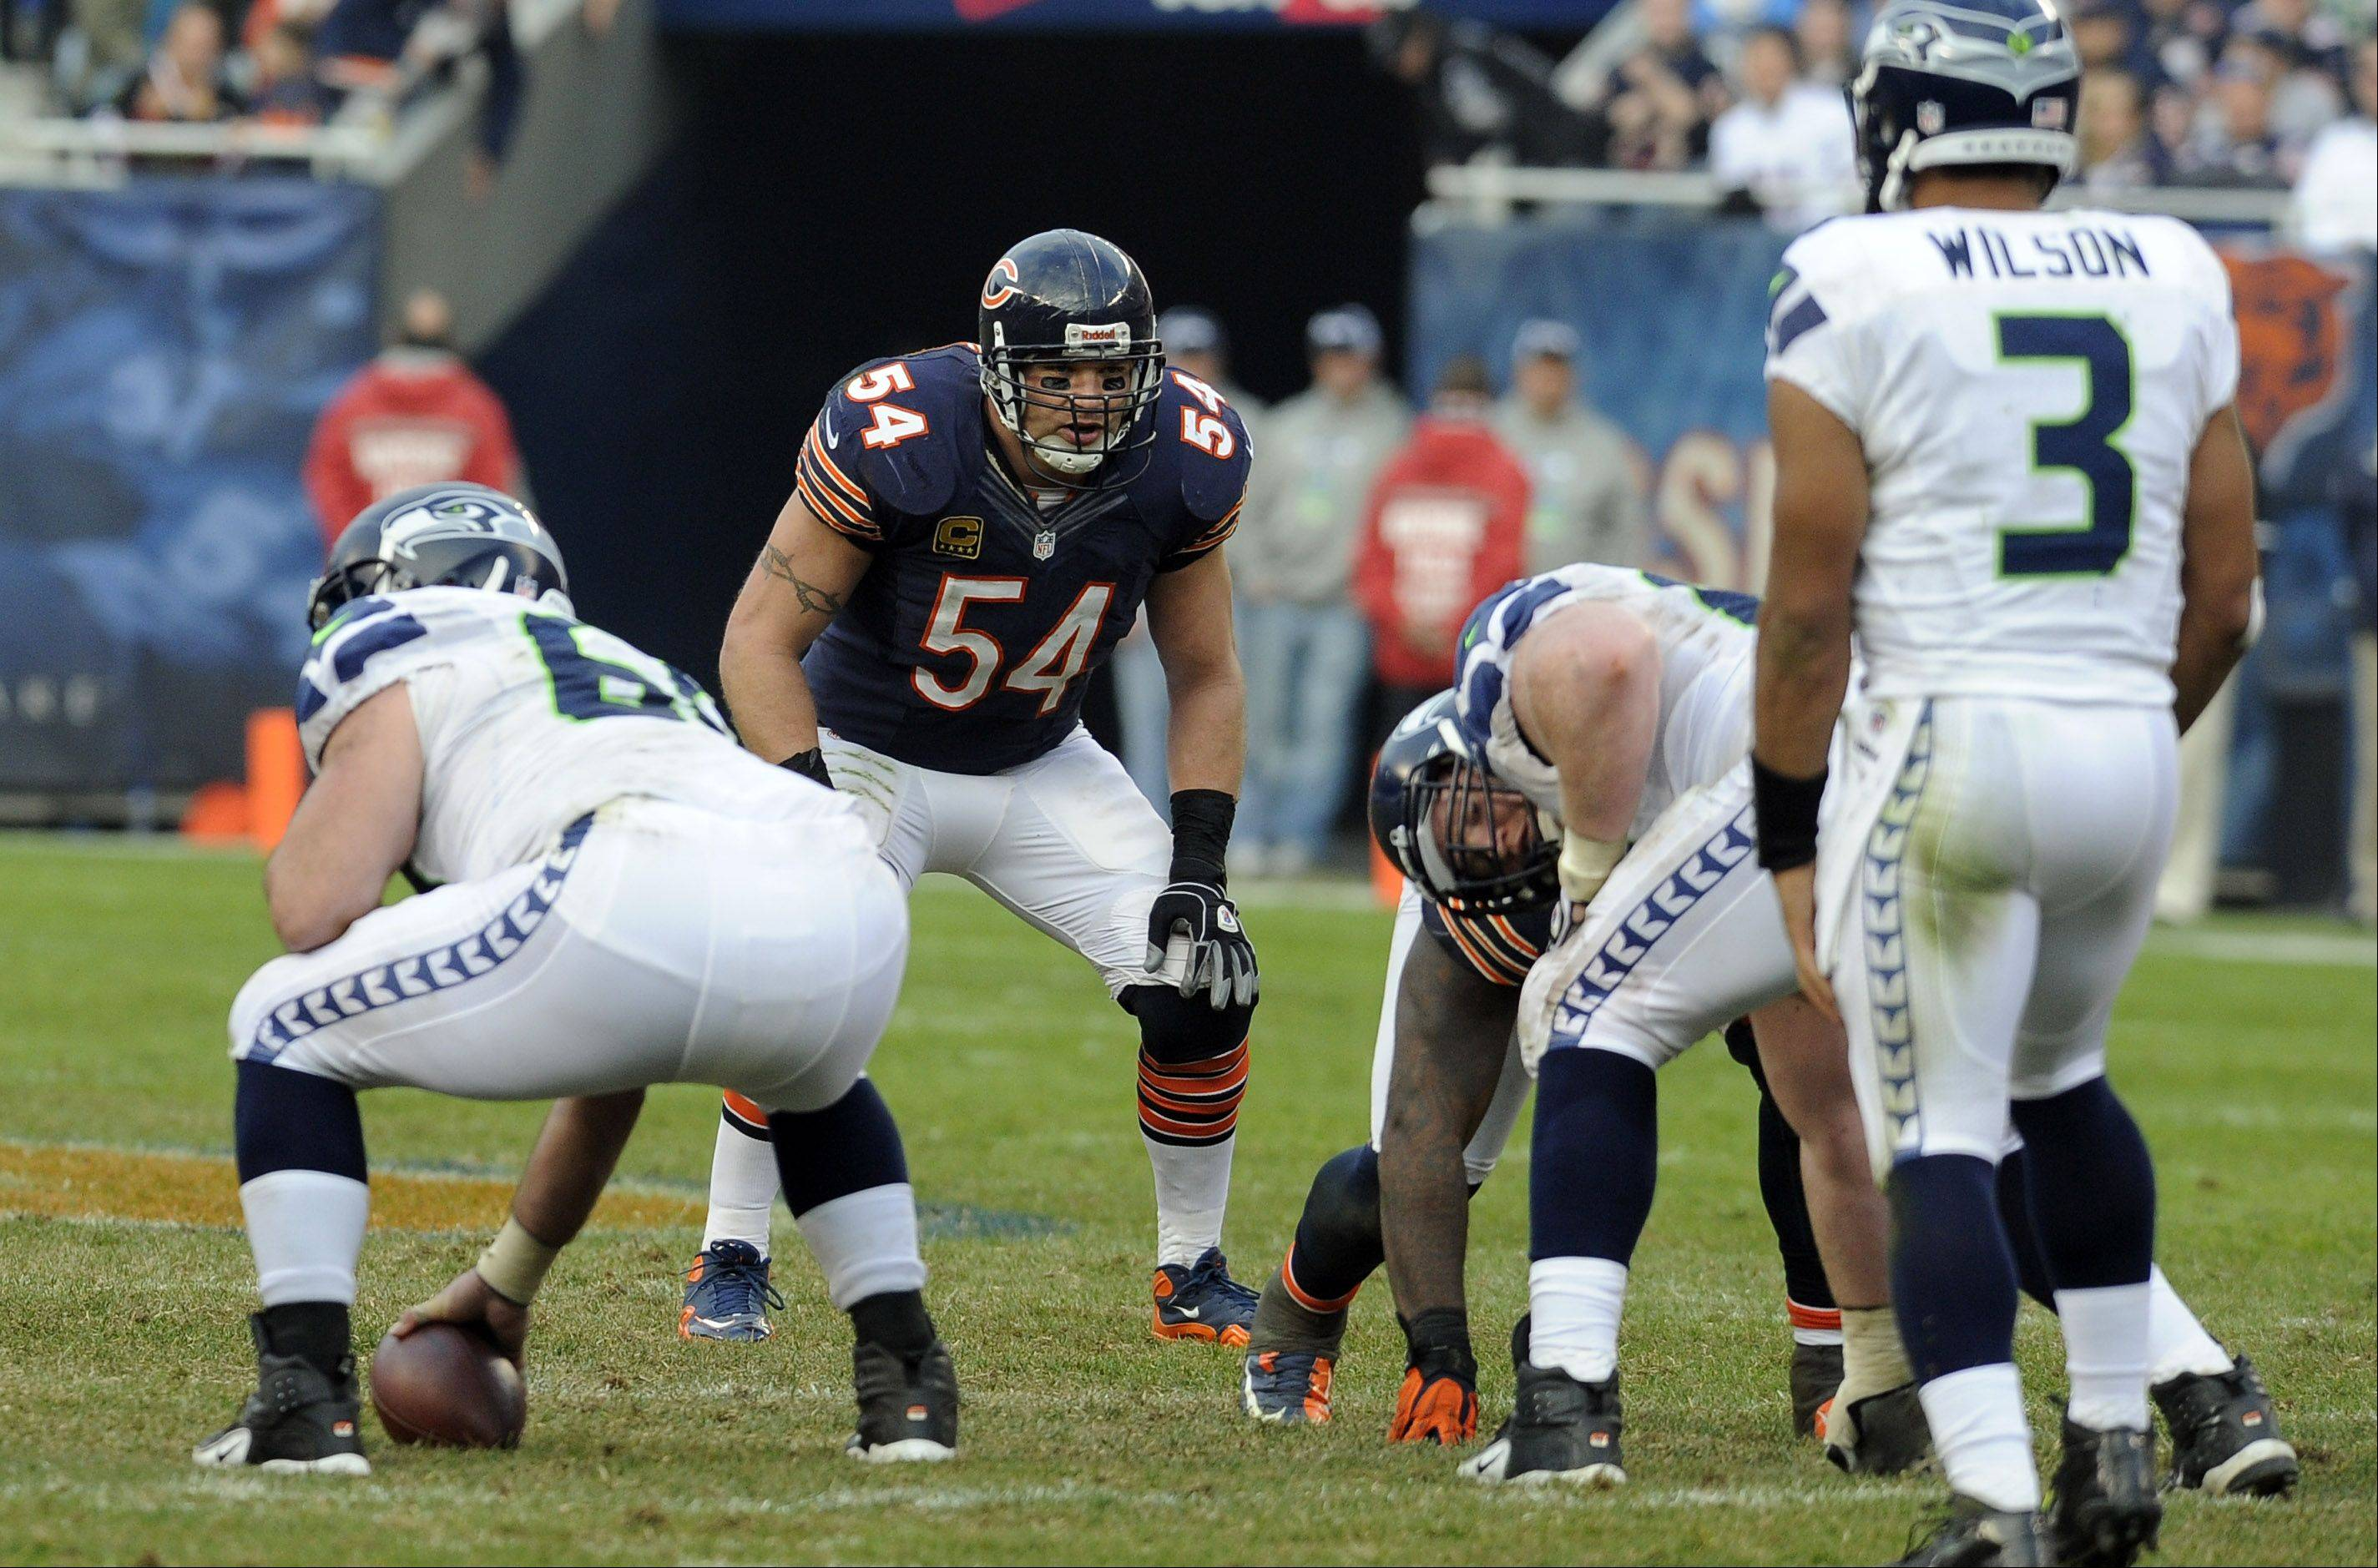 Mark Welsh/mwelsh@dailyherald.com Bears Brian Urlacher on defense suffered an injury that will sideline him for the rest of the season in the Bears loss to the Seahawks at Soldier Field in Chicago.